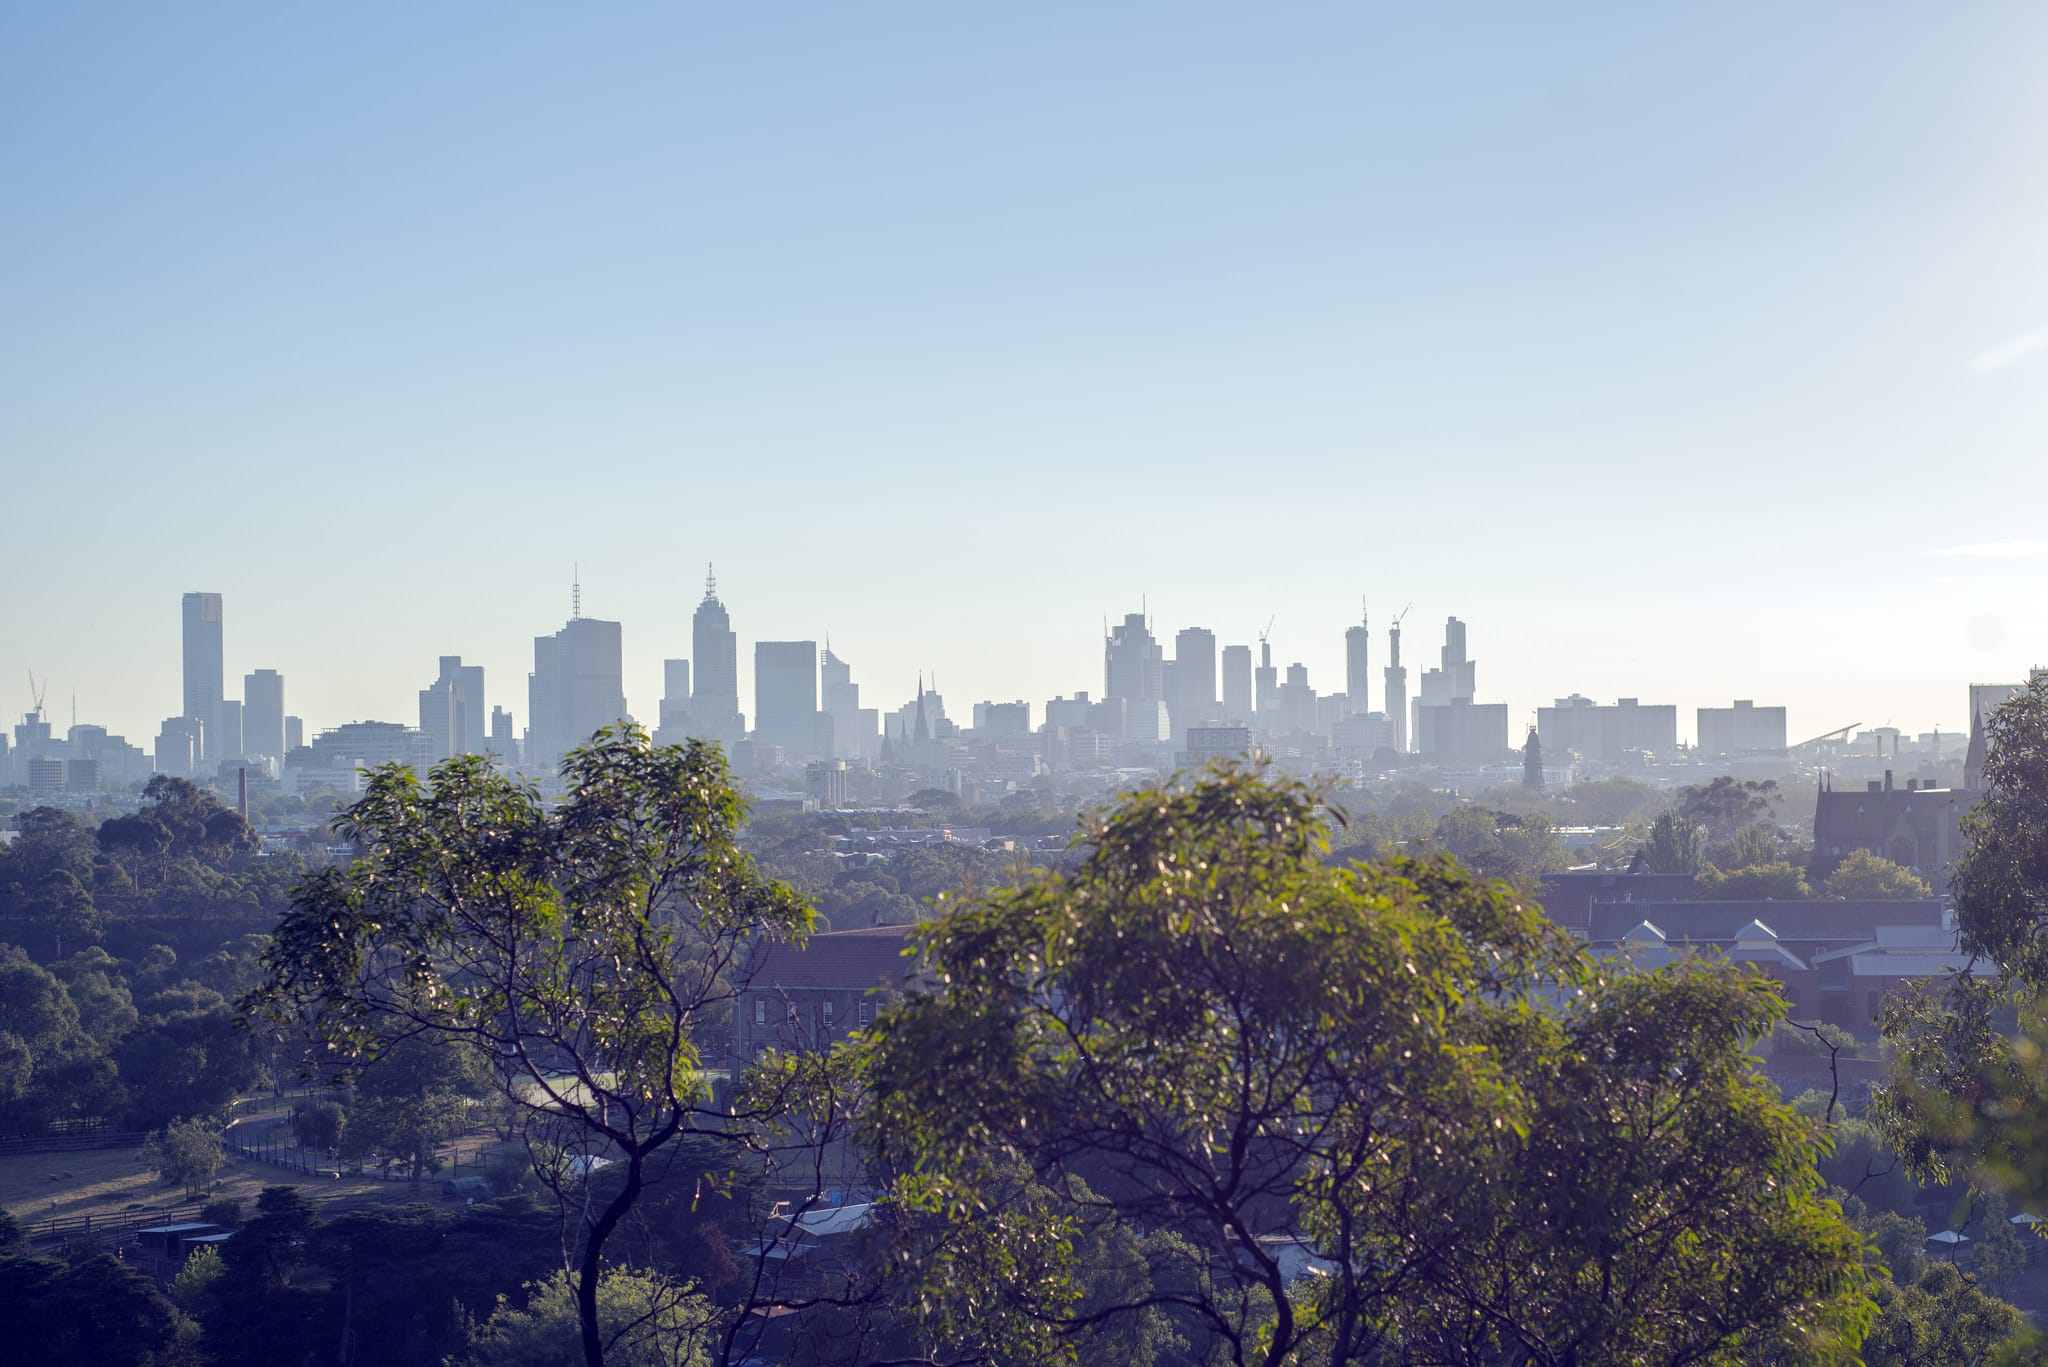 Victorian residential zones: reformed or re-form